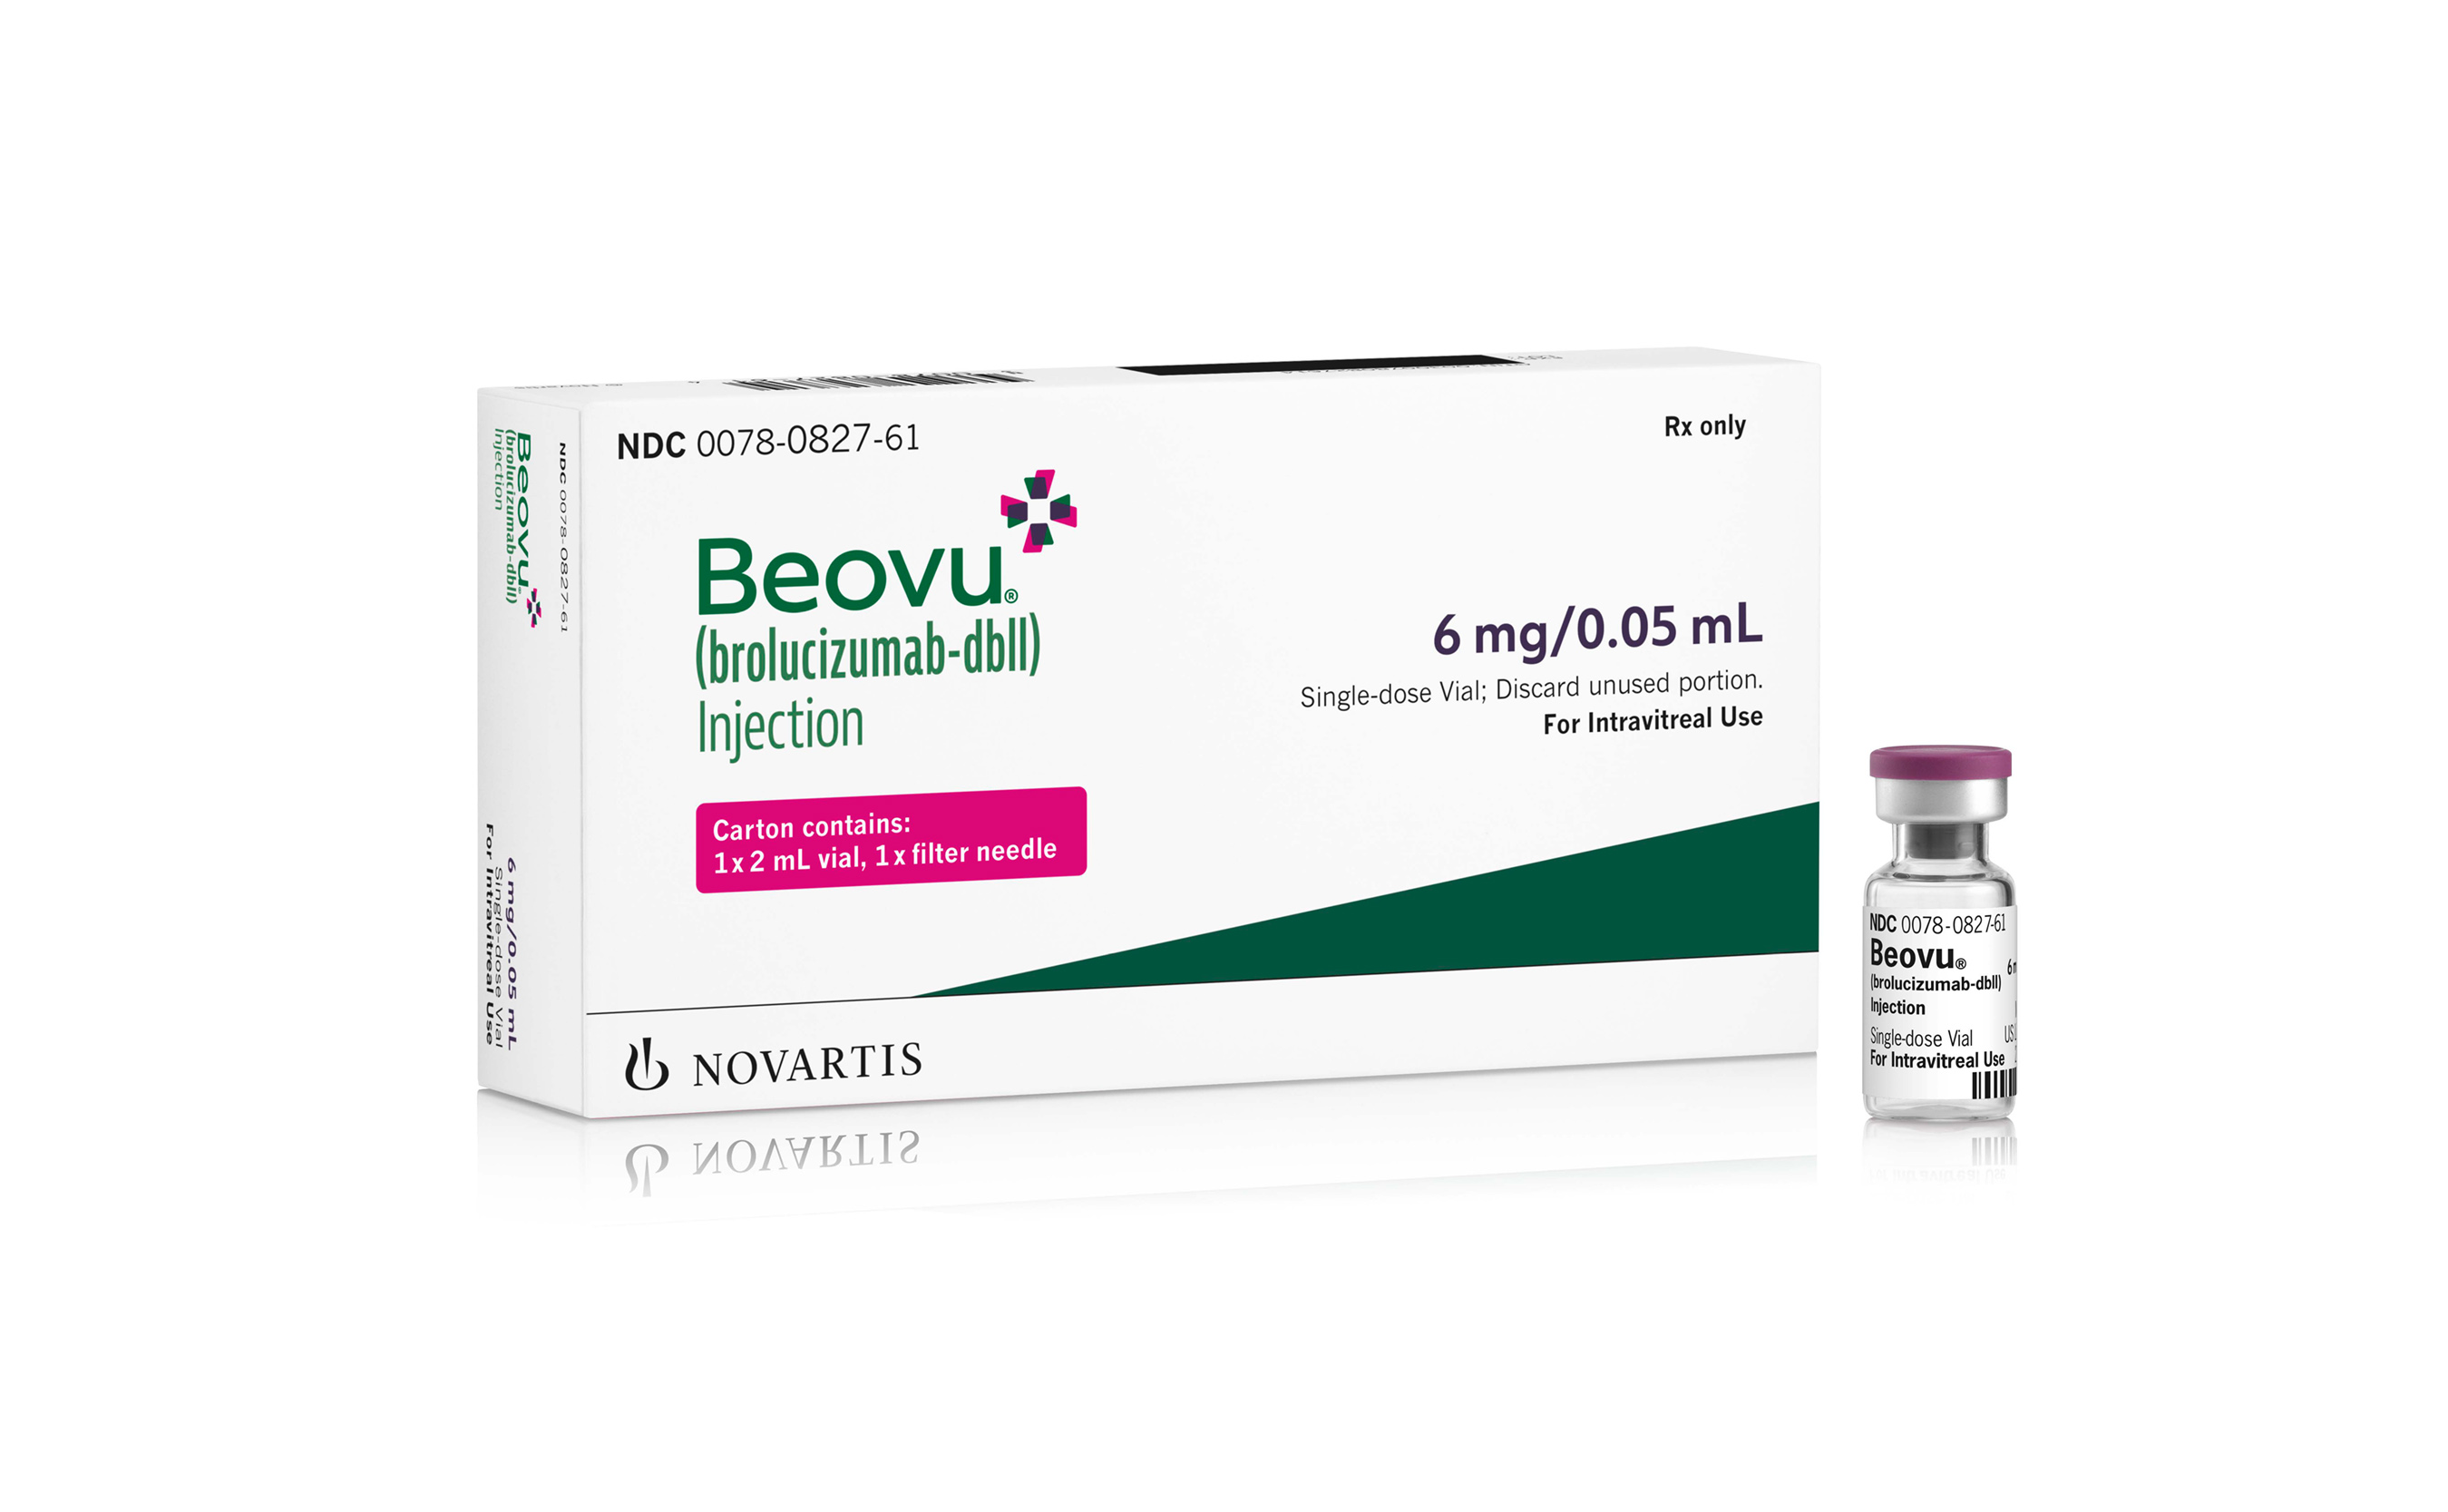 Rx Item-Beovu (brolucizumab-dbll) Injection by Novartis 6MG/0.05ML, (6 MG) SDV P